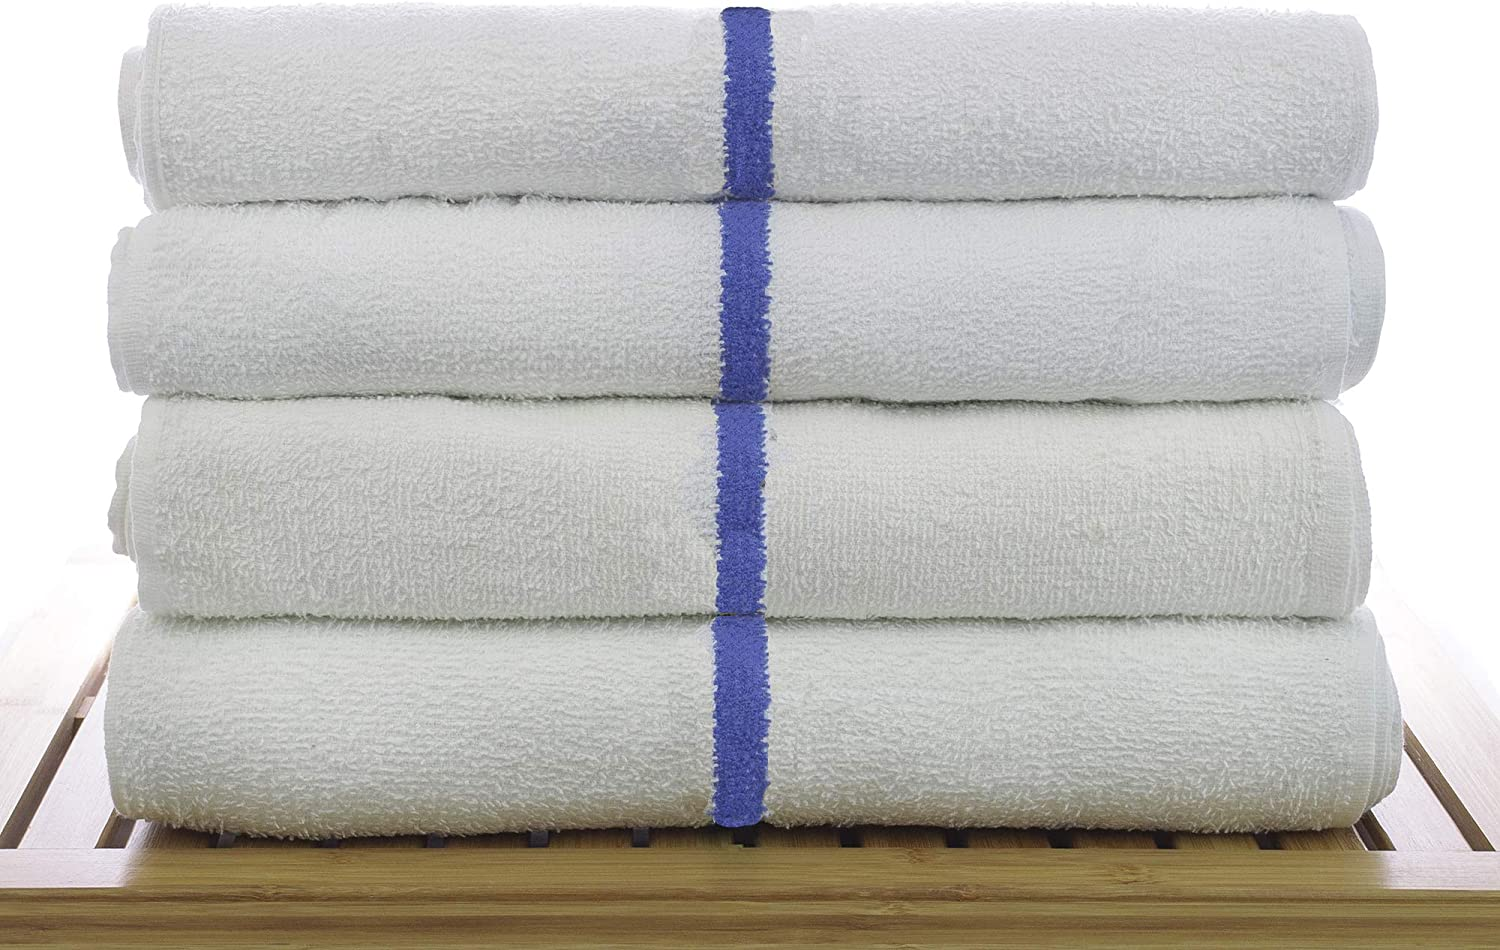 BC BARE COTTON Kitchen Bar Brand Cheap Sale Venue Mop o Outlet SALE for Cleaning Cotton Towels Home